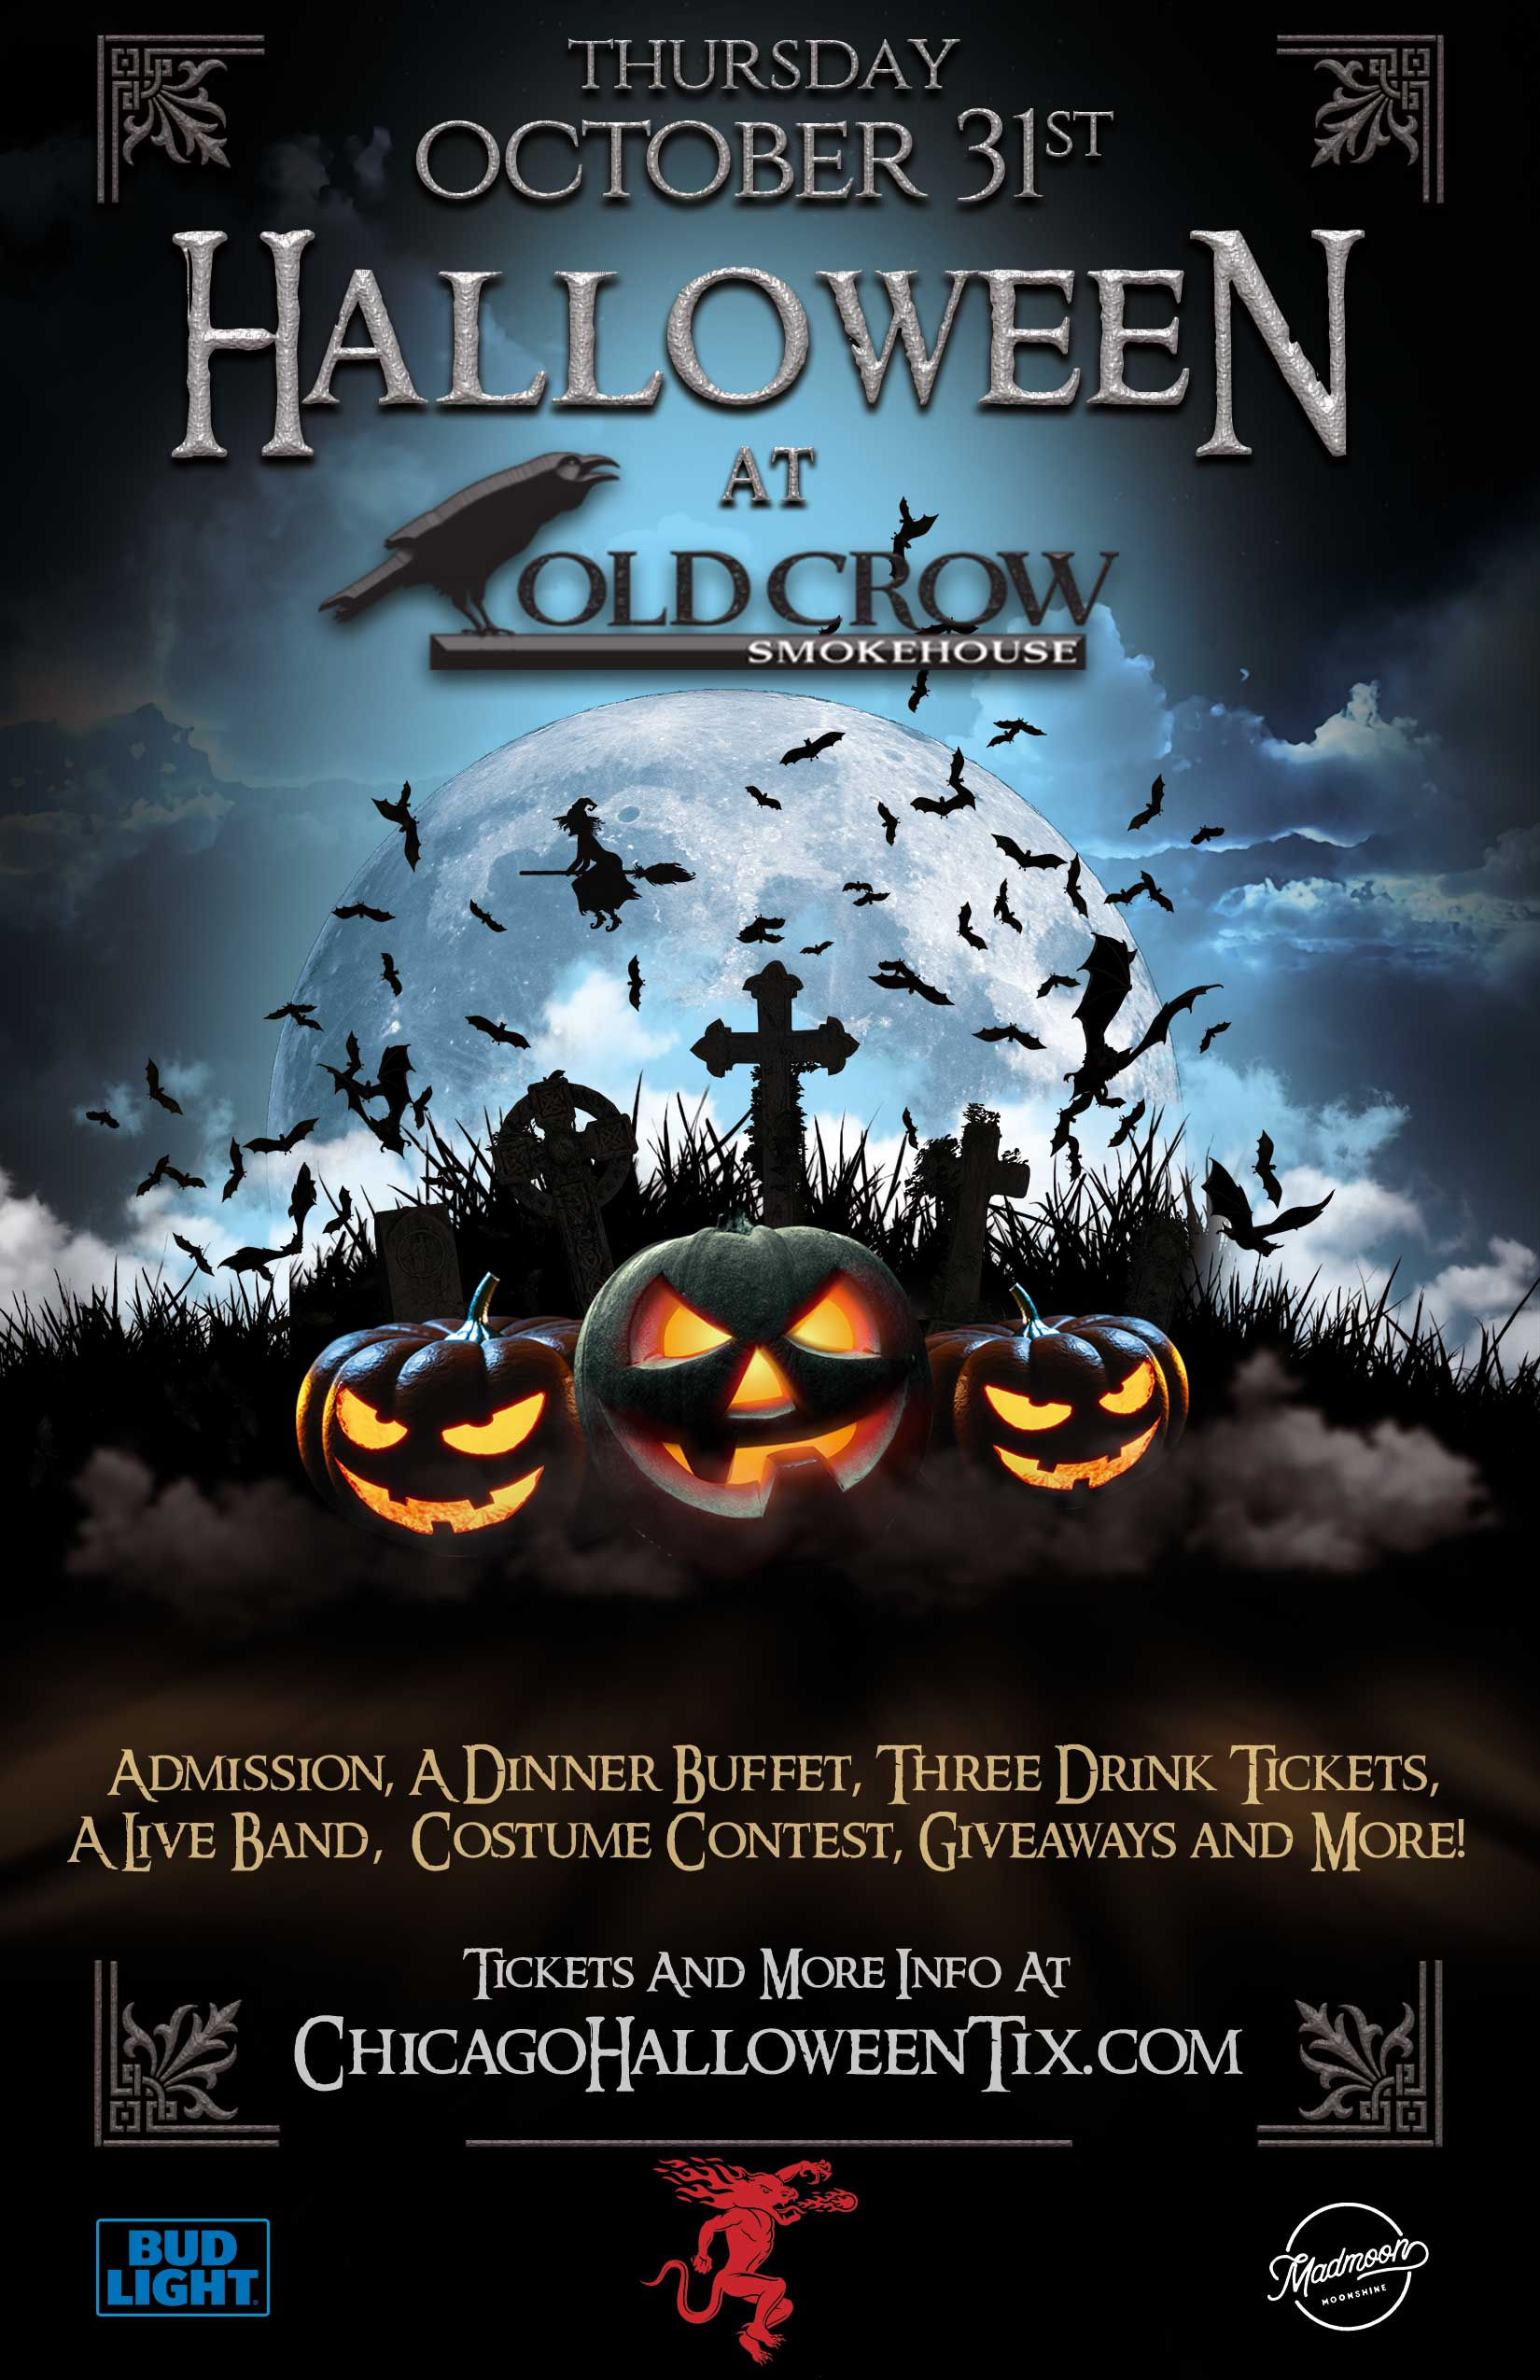 Old Crow Wrigleyville Halloween Party - Tickets include Admission & a Free Dinner Buffet, 3 Drink Tickets, a Costume Contest, Giveaways & MORE!